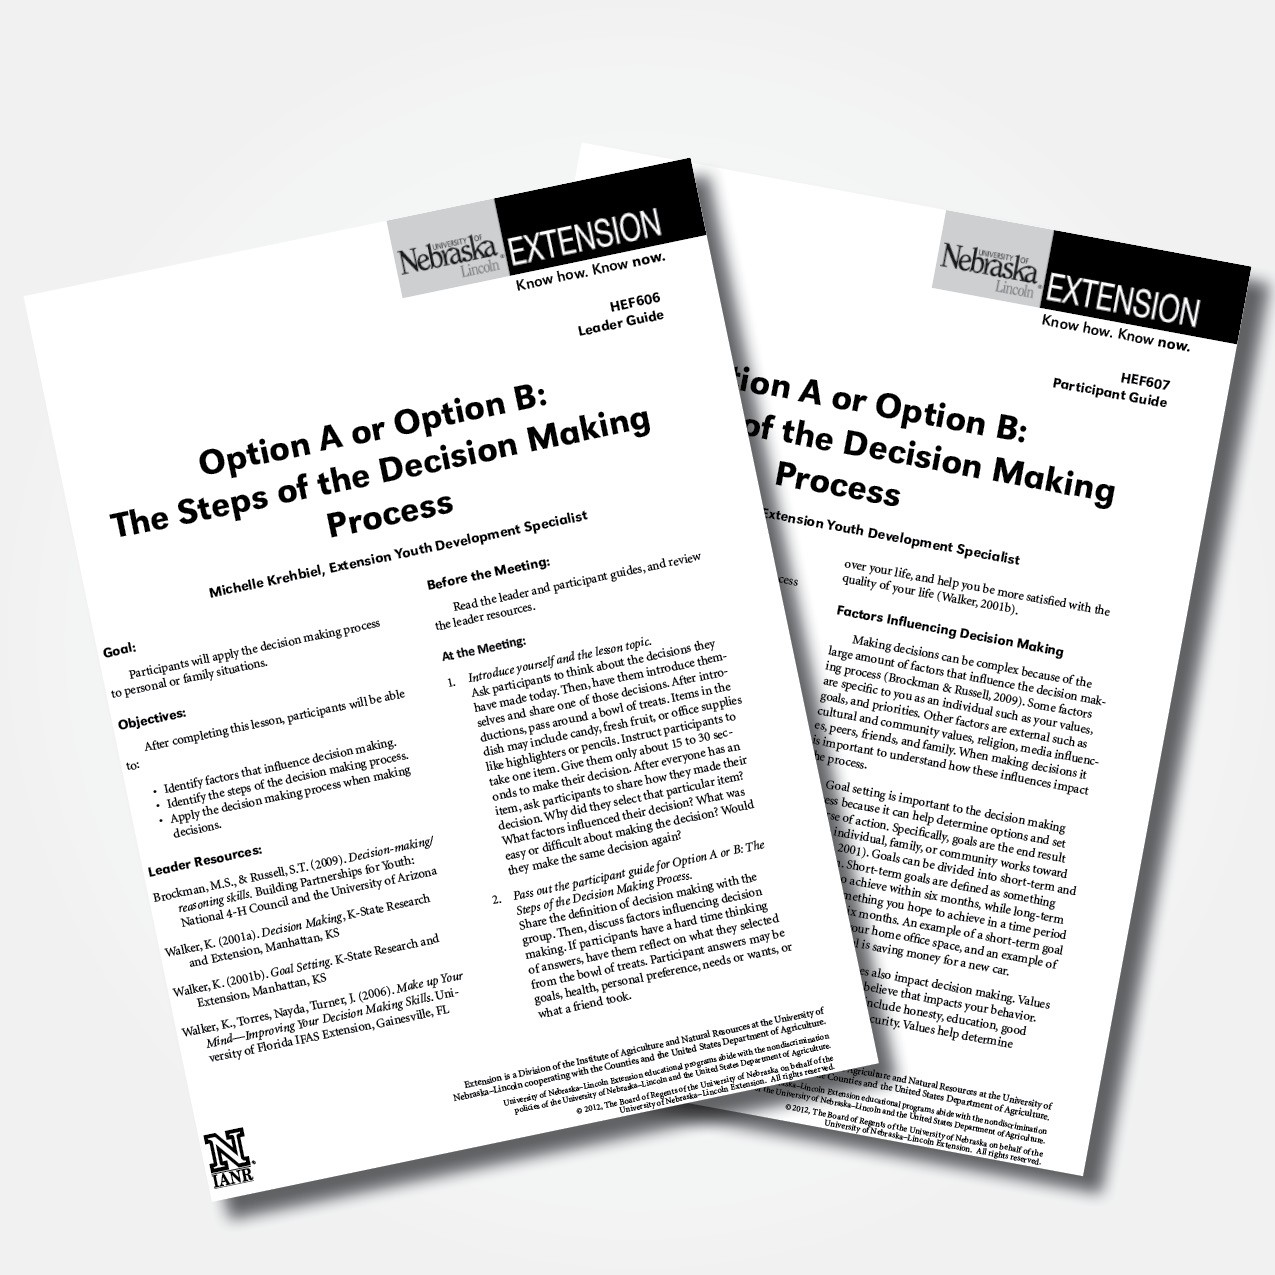 Option A or Option B: The Steps of the Decision Making Process